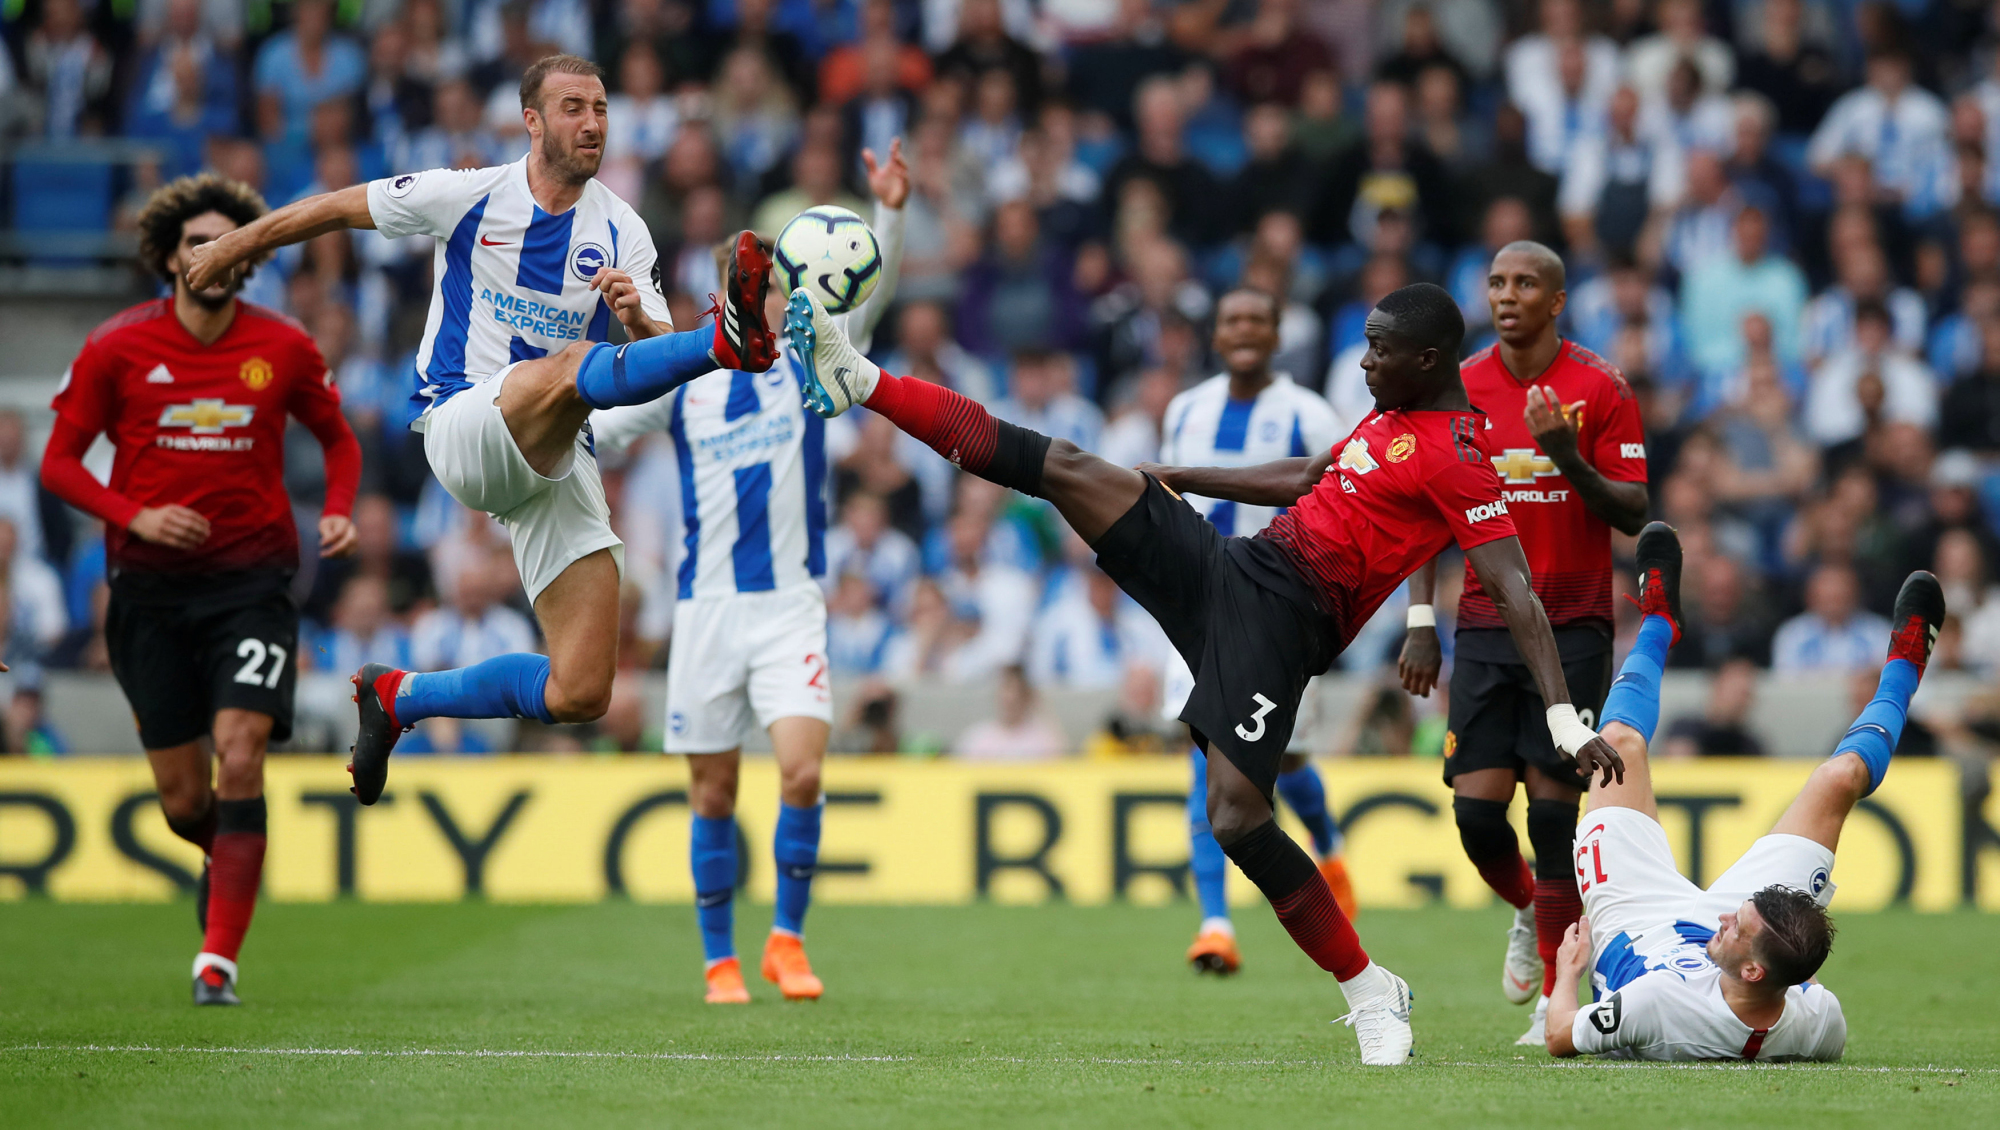 Manchester United's Eric Bailly (right) and Brighton's Glenn Murray vie for the ball during their match on Sunday in Brighton, England. Brighton won 3-2. | REUTERS